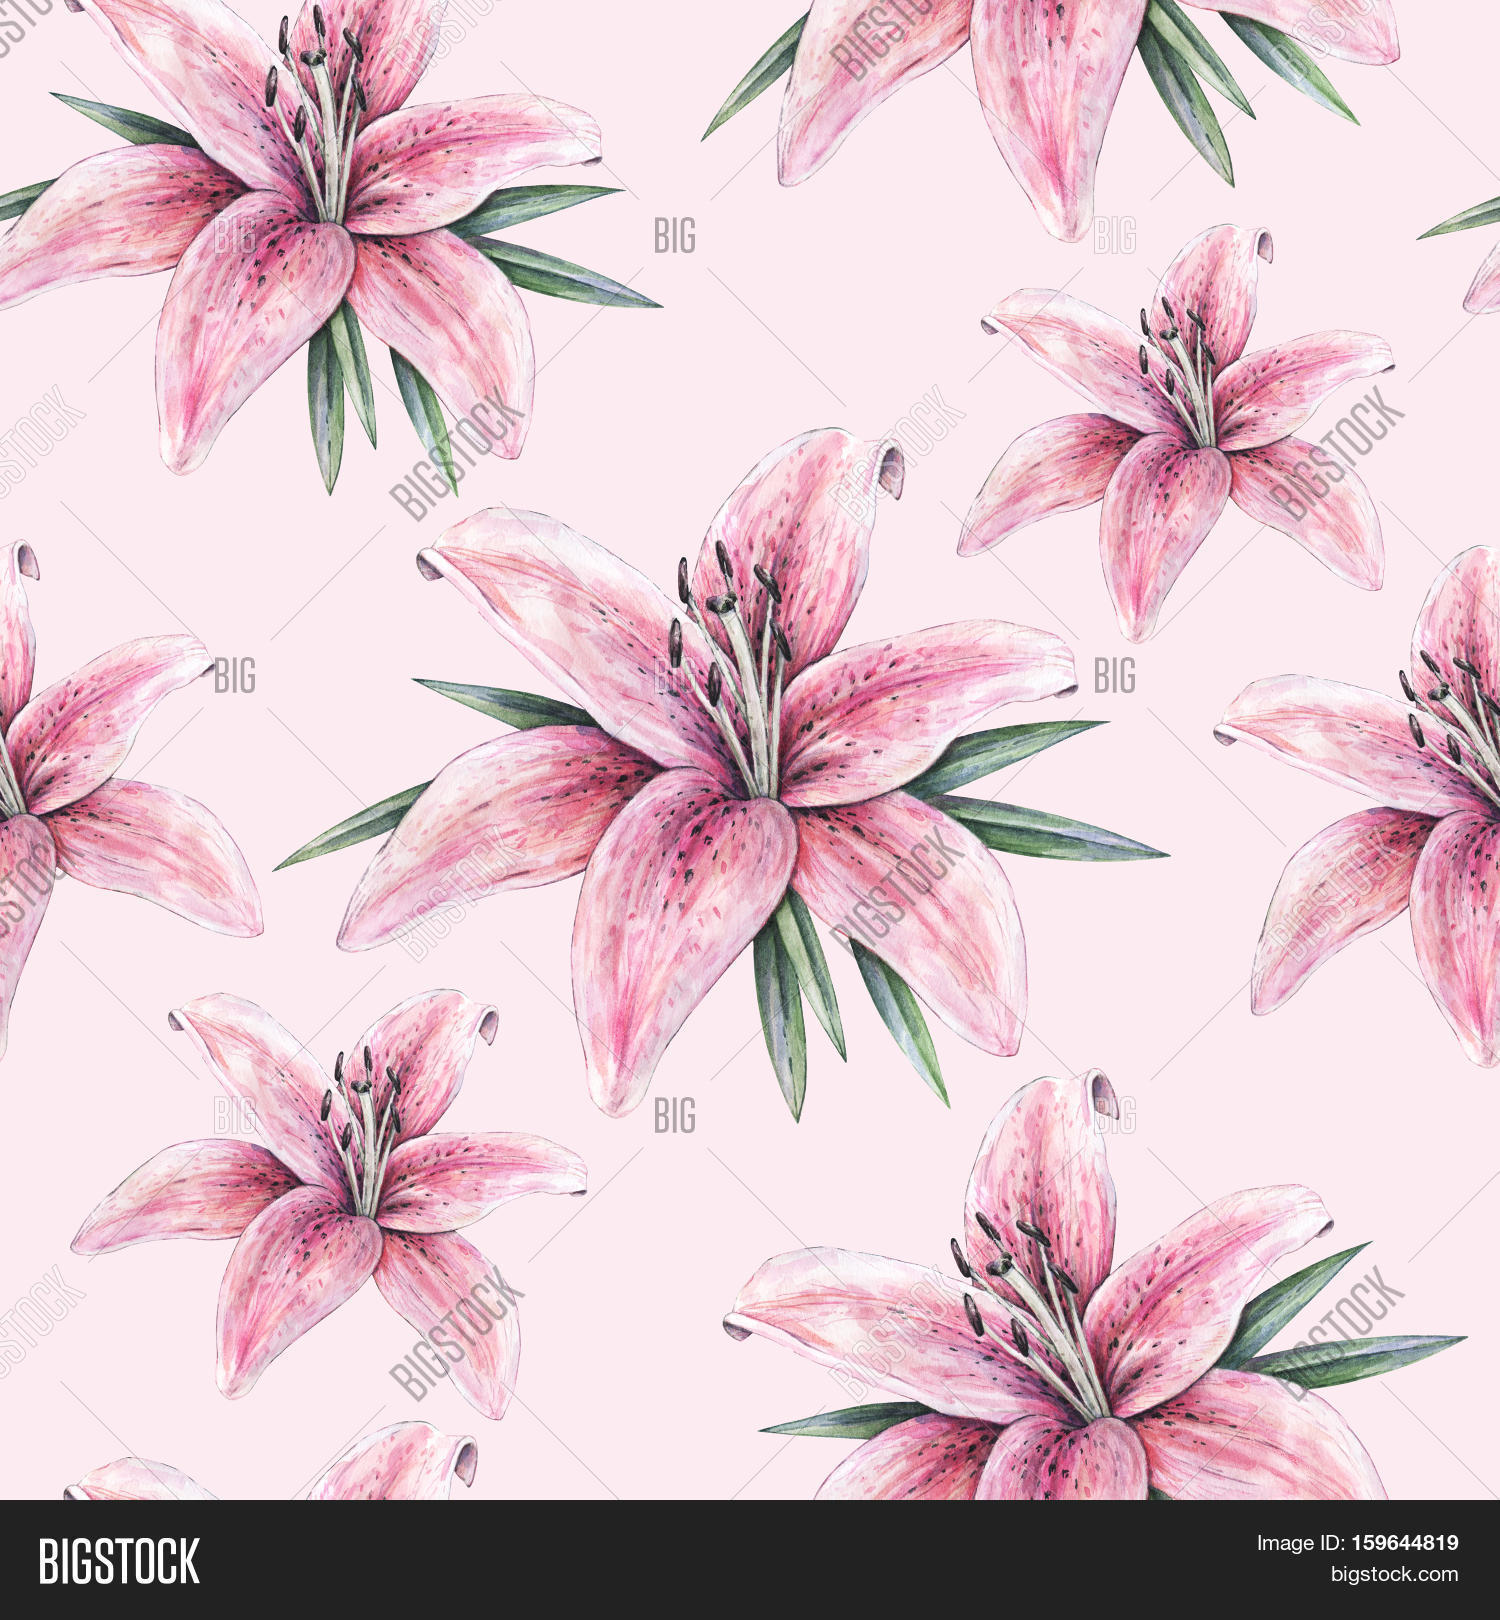 Pink lily flowers image photo free trial bigstock pink lily flowers isolated on pink background watercolor handwork illustration drawing of blooming lily izmirmasajfo